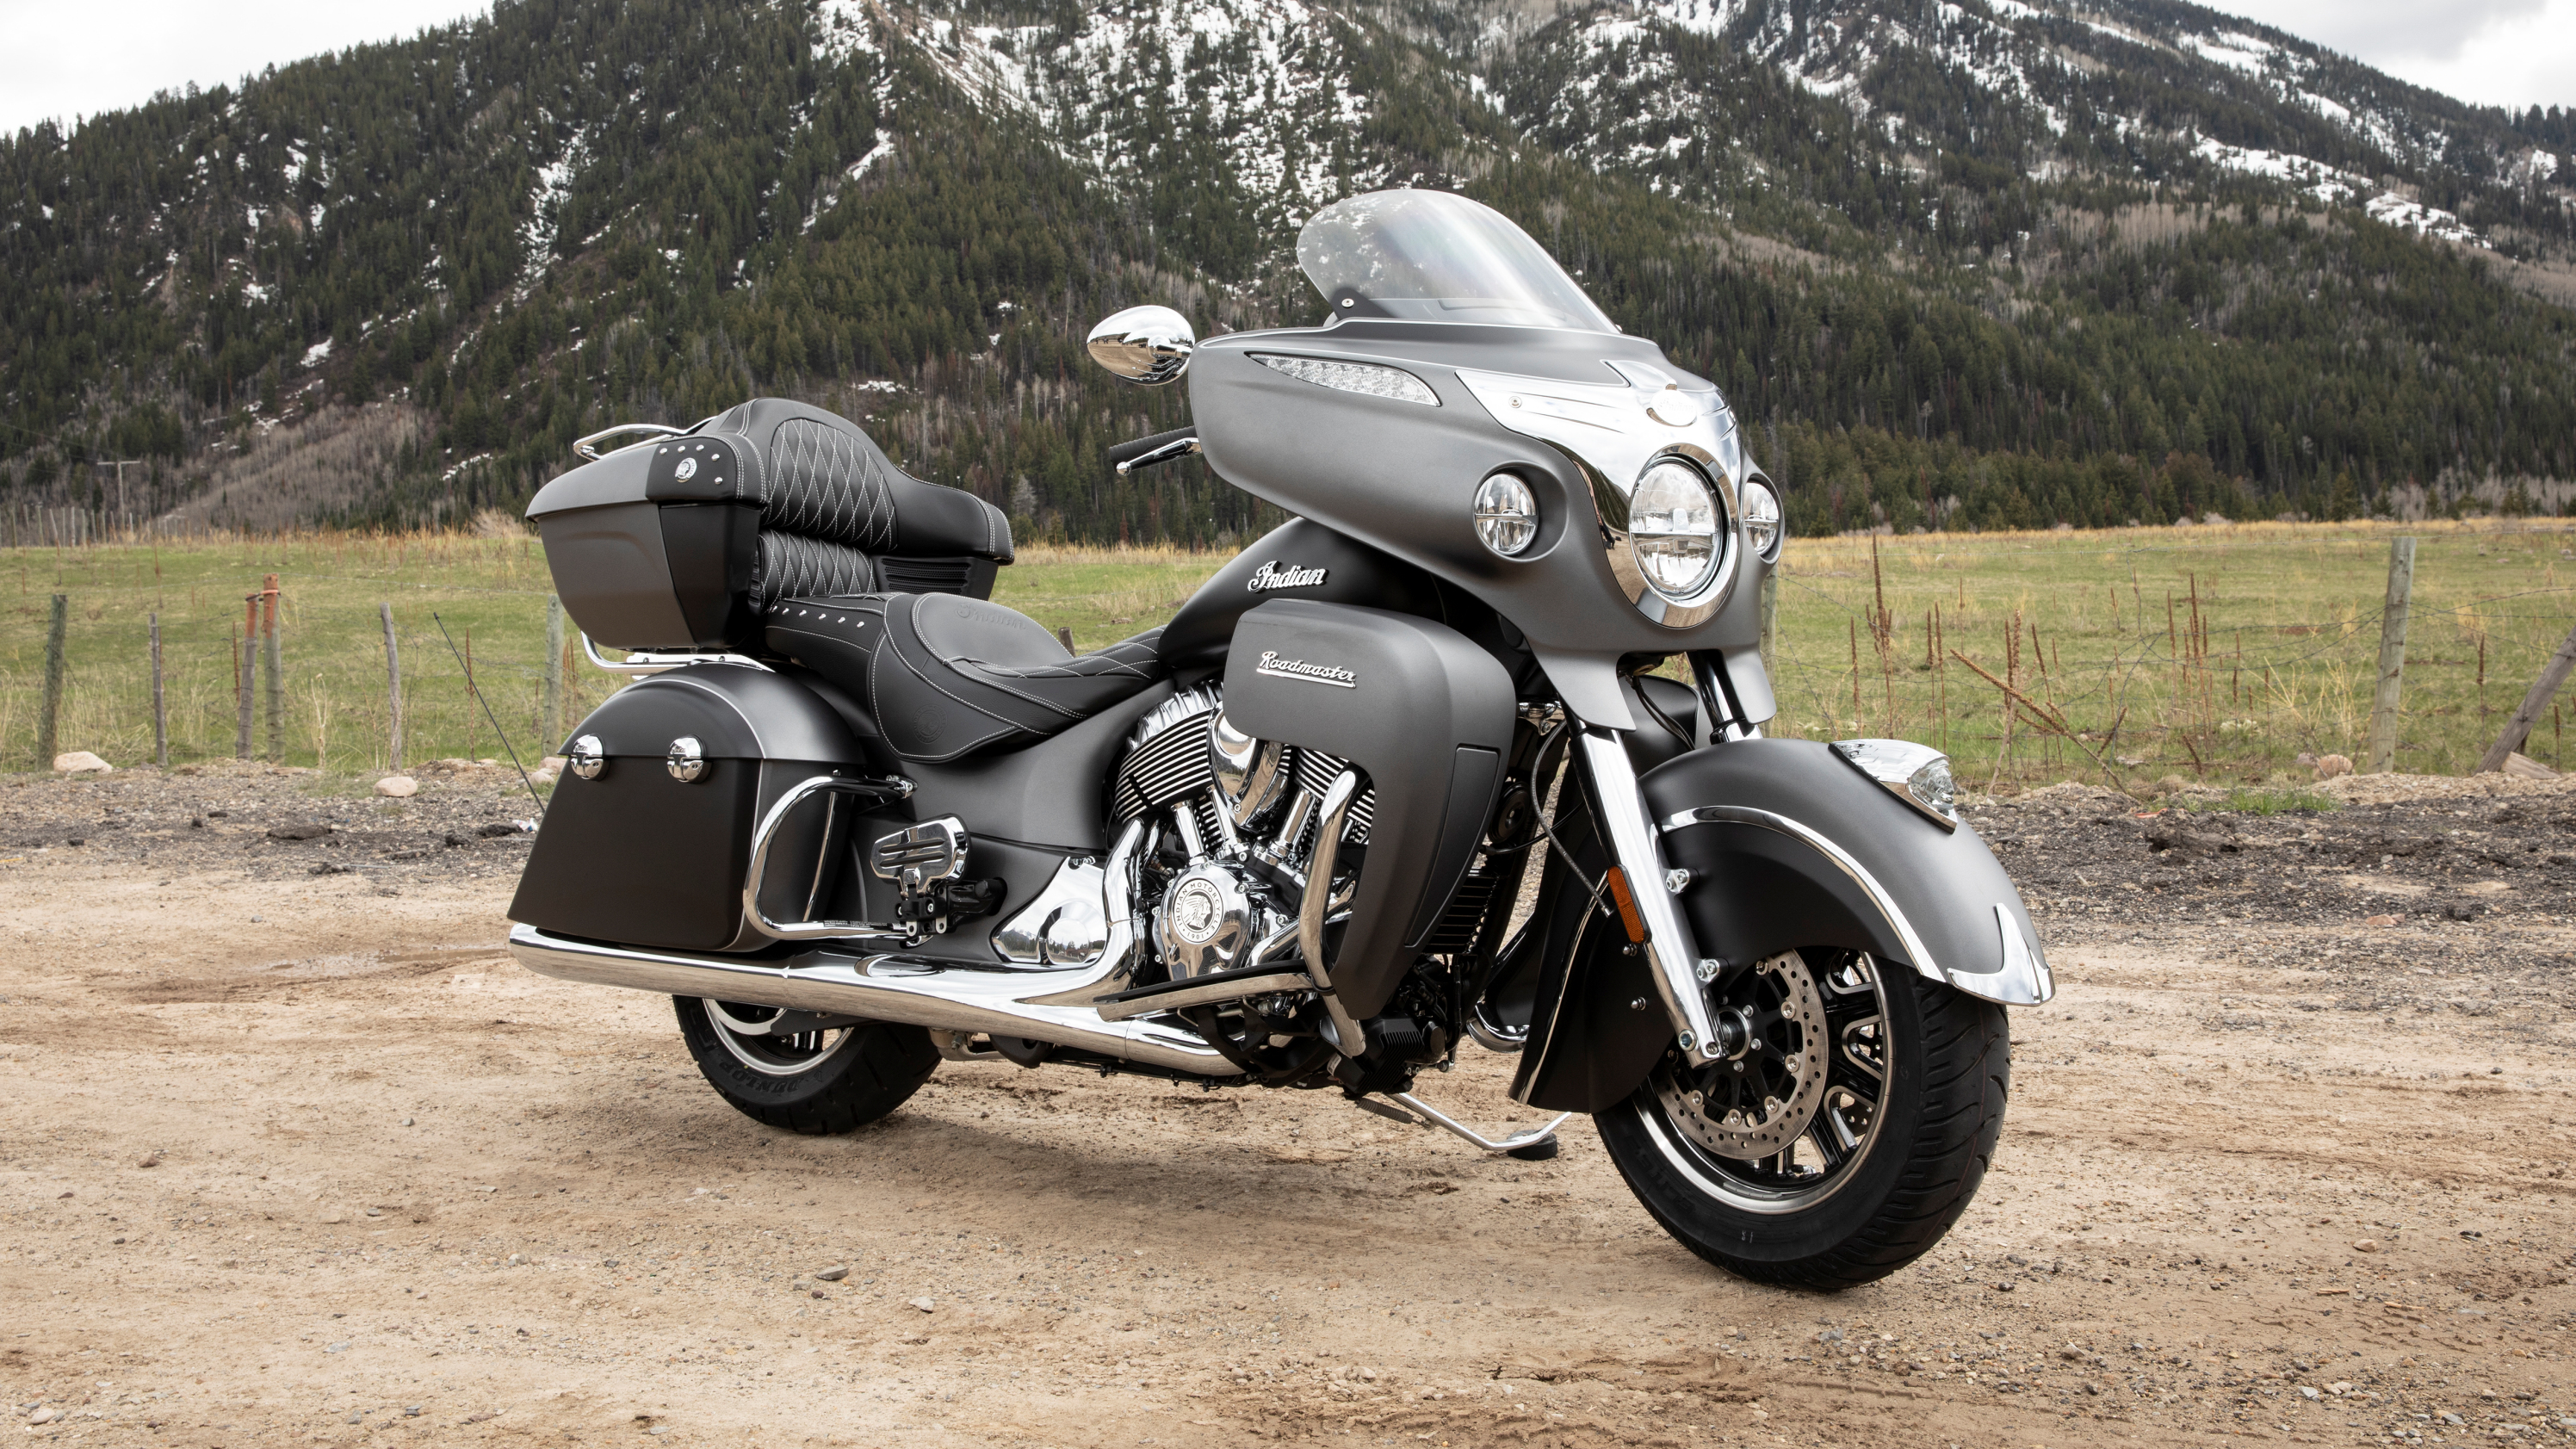 2018 Indian Roadmaster Pictures, Photos, Wallpapers